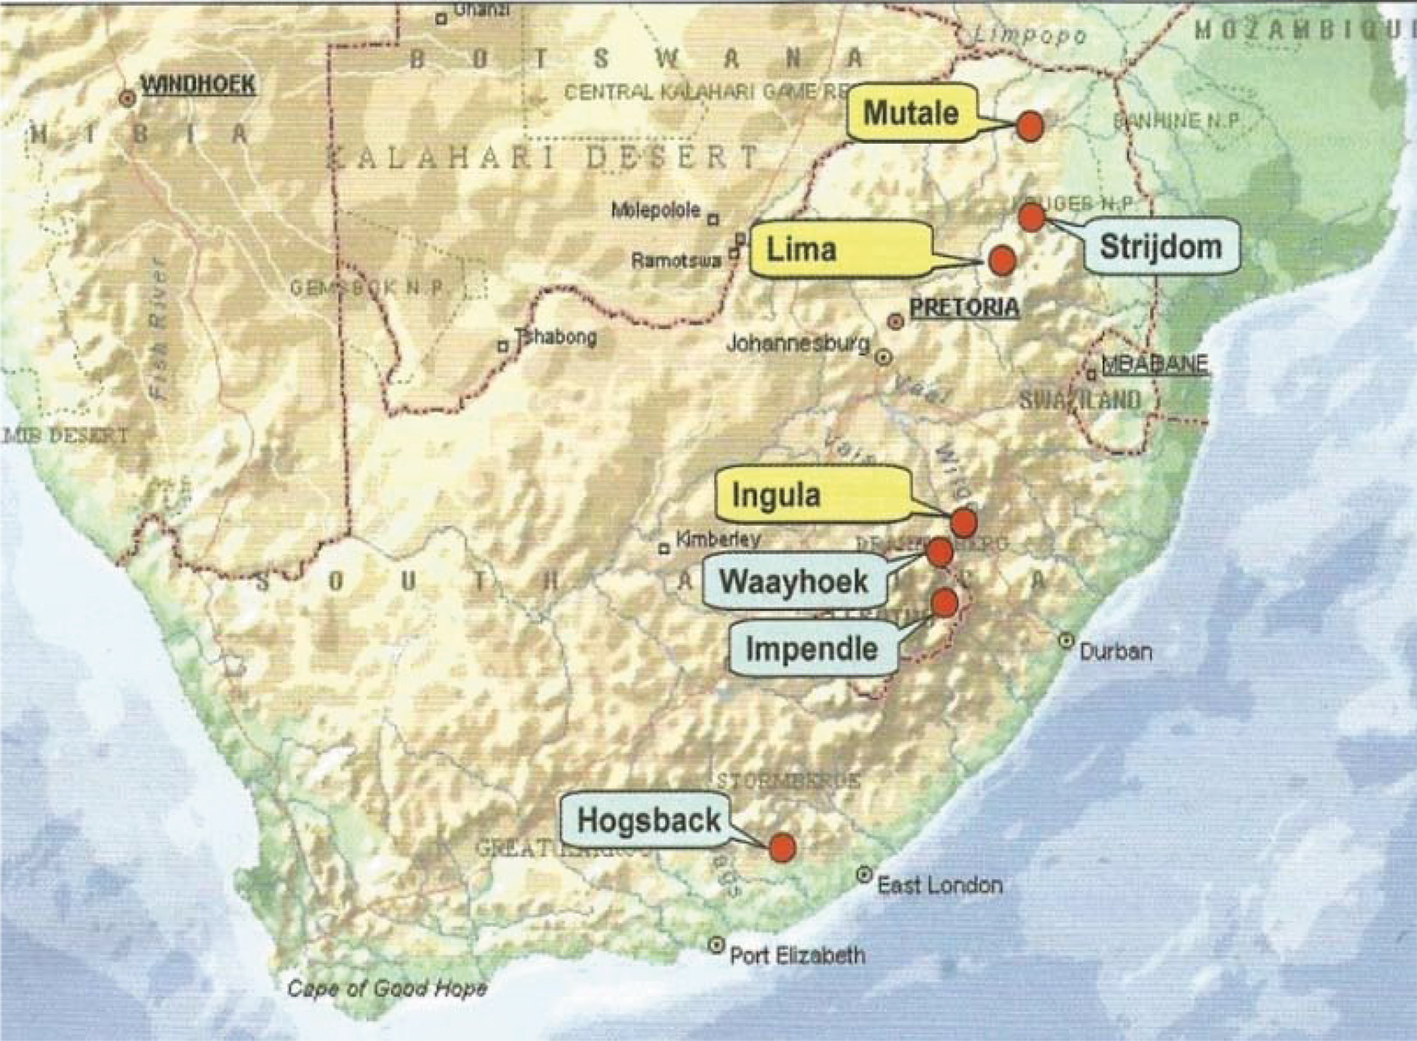 aaedfdfdcc554 The contribution of pumped storage schemes to energy generation in South  Africa